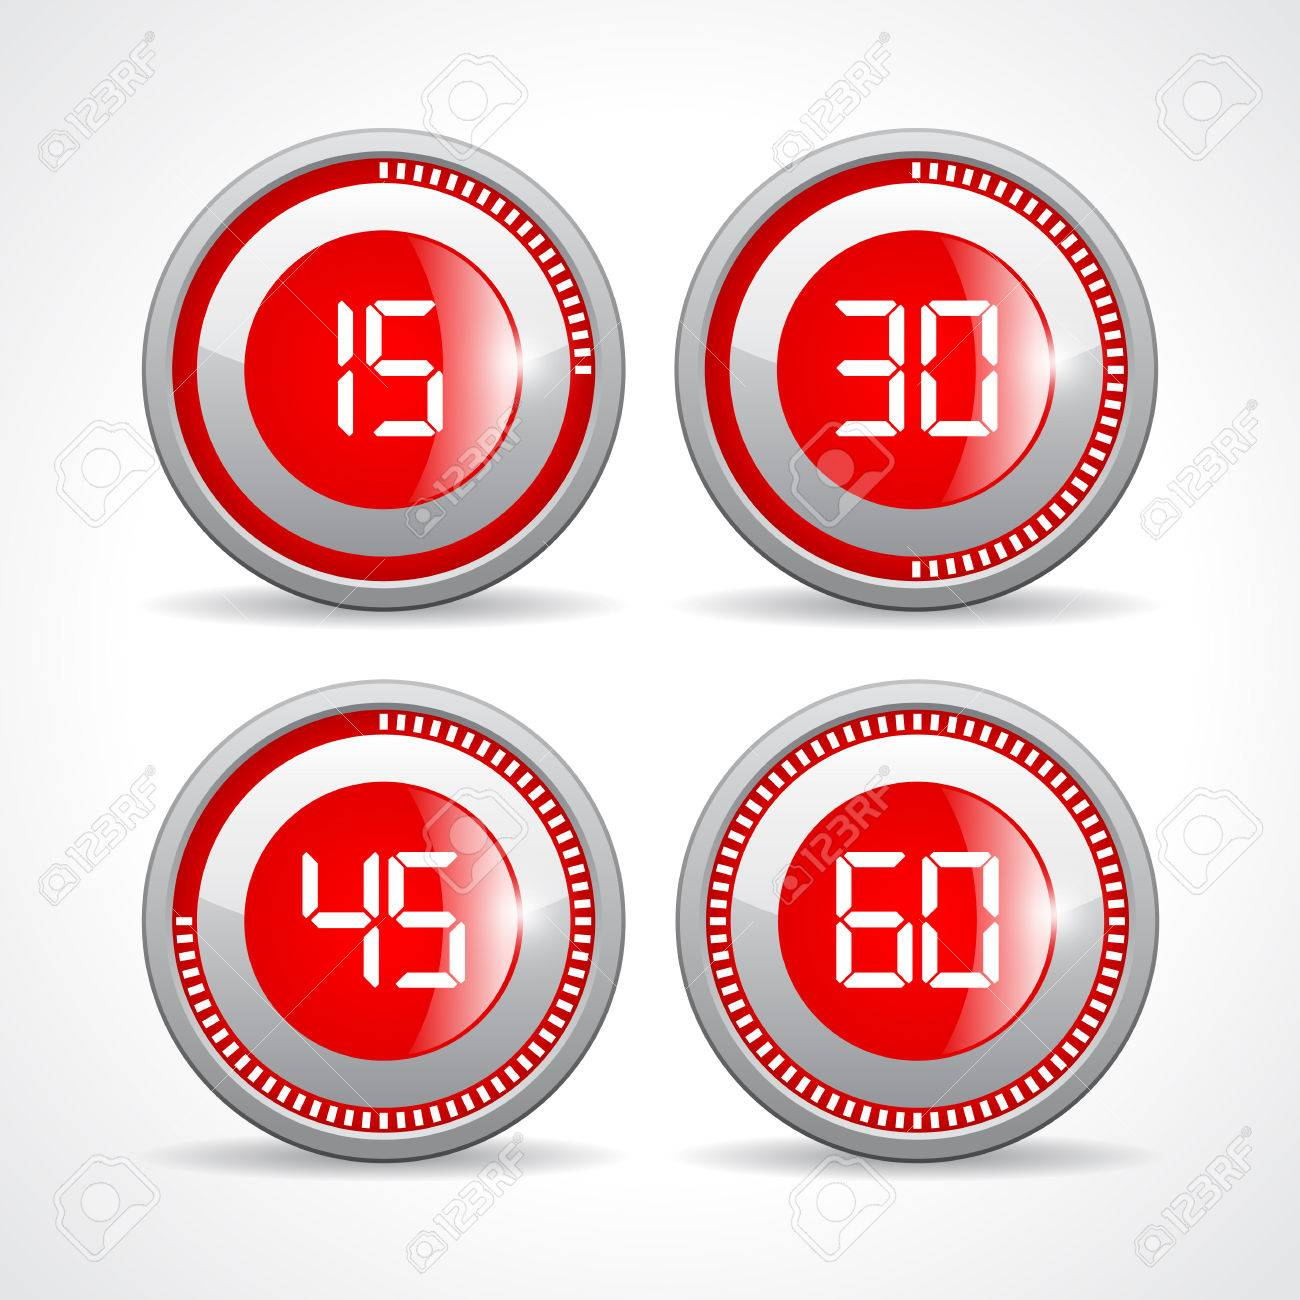 timers set 15 30 45 60 minutes royalty free cliparts vectors and